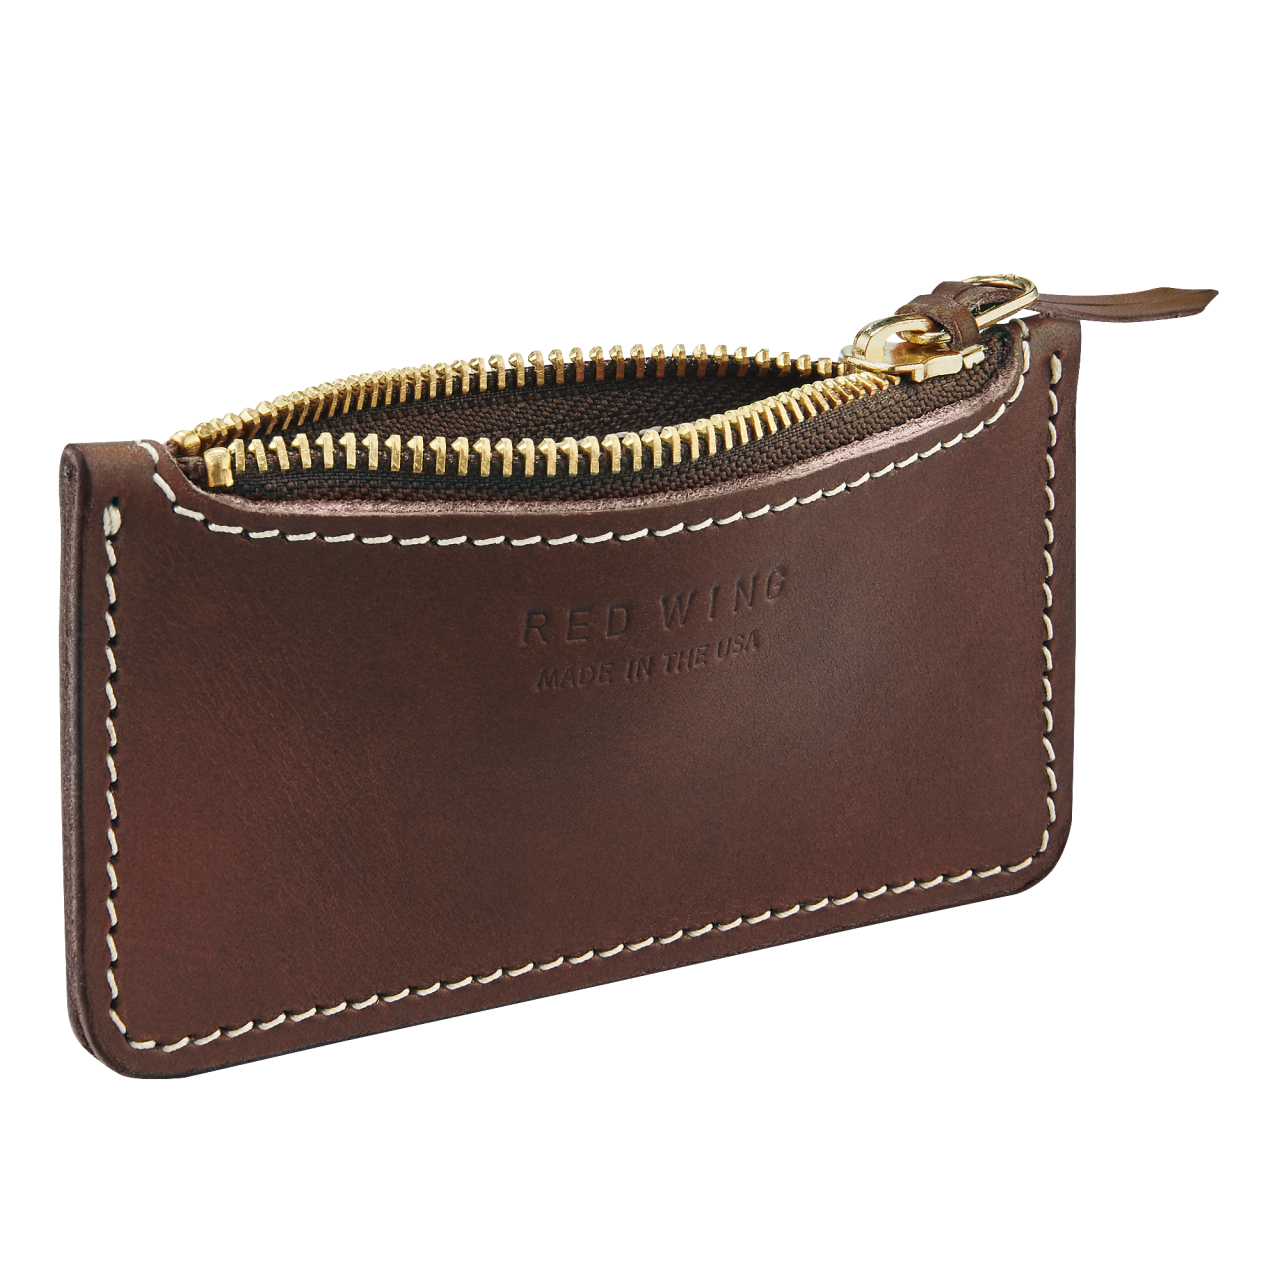 Red Wing 95038 Zipper Pouch